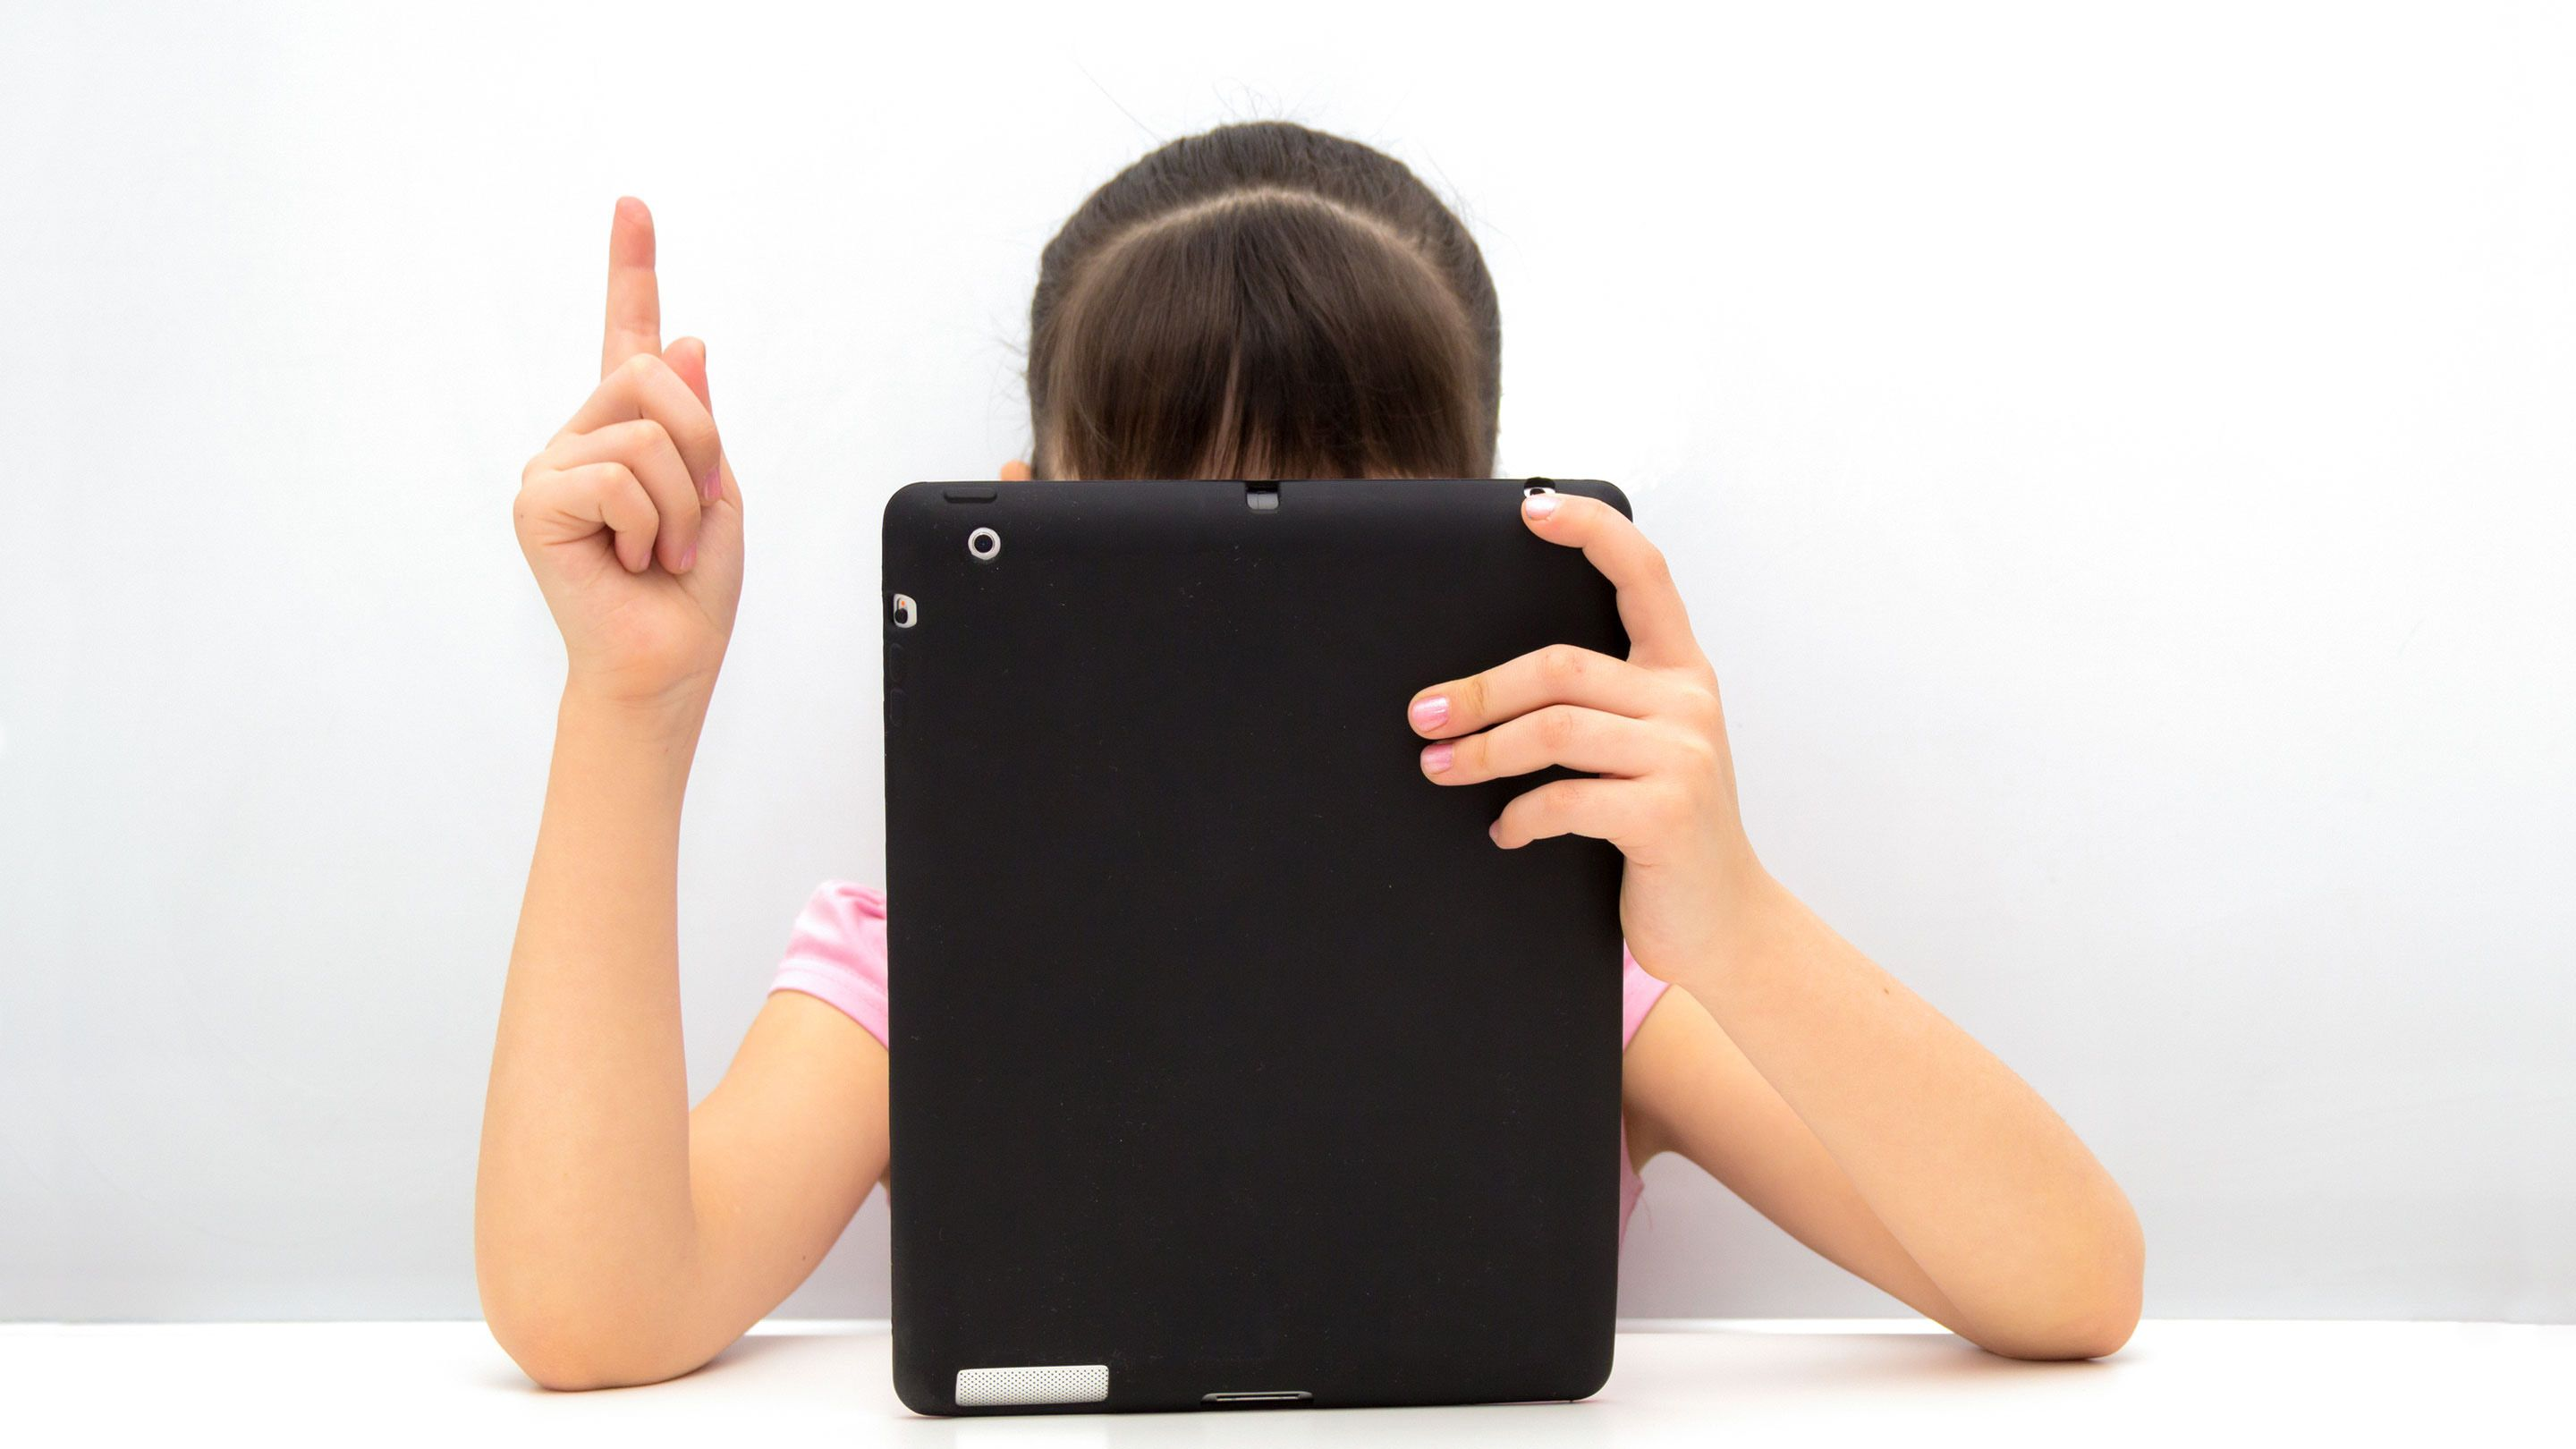 A girl hidden behind a tablet computer raises her hand.